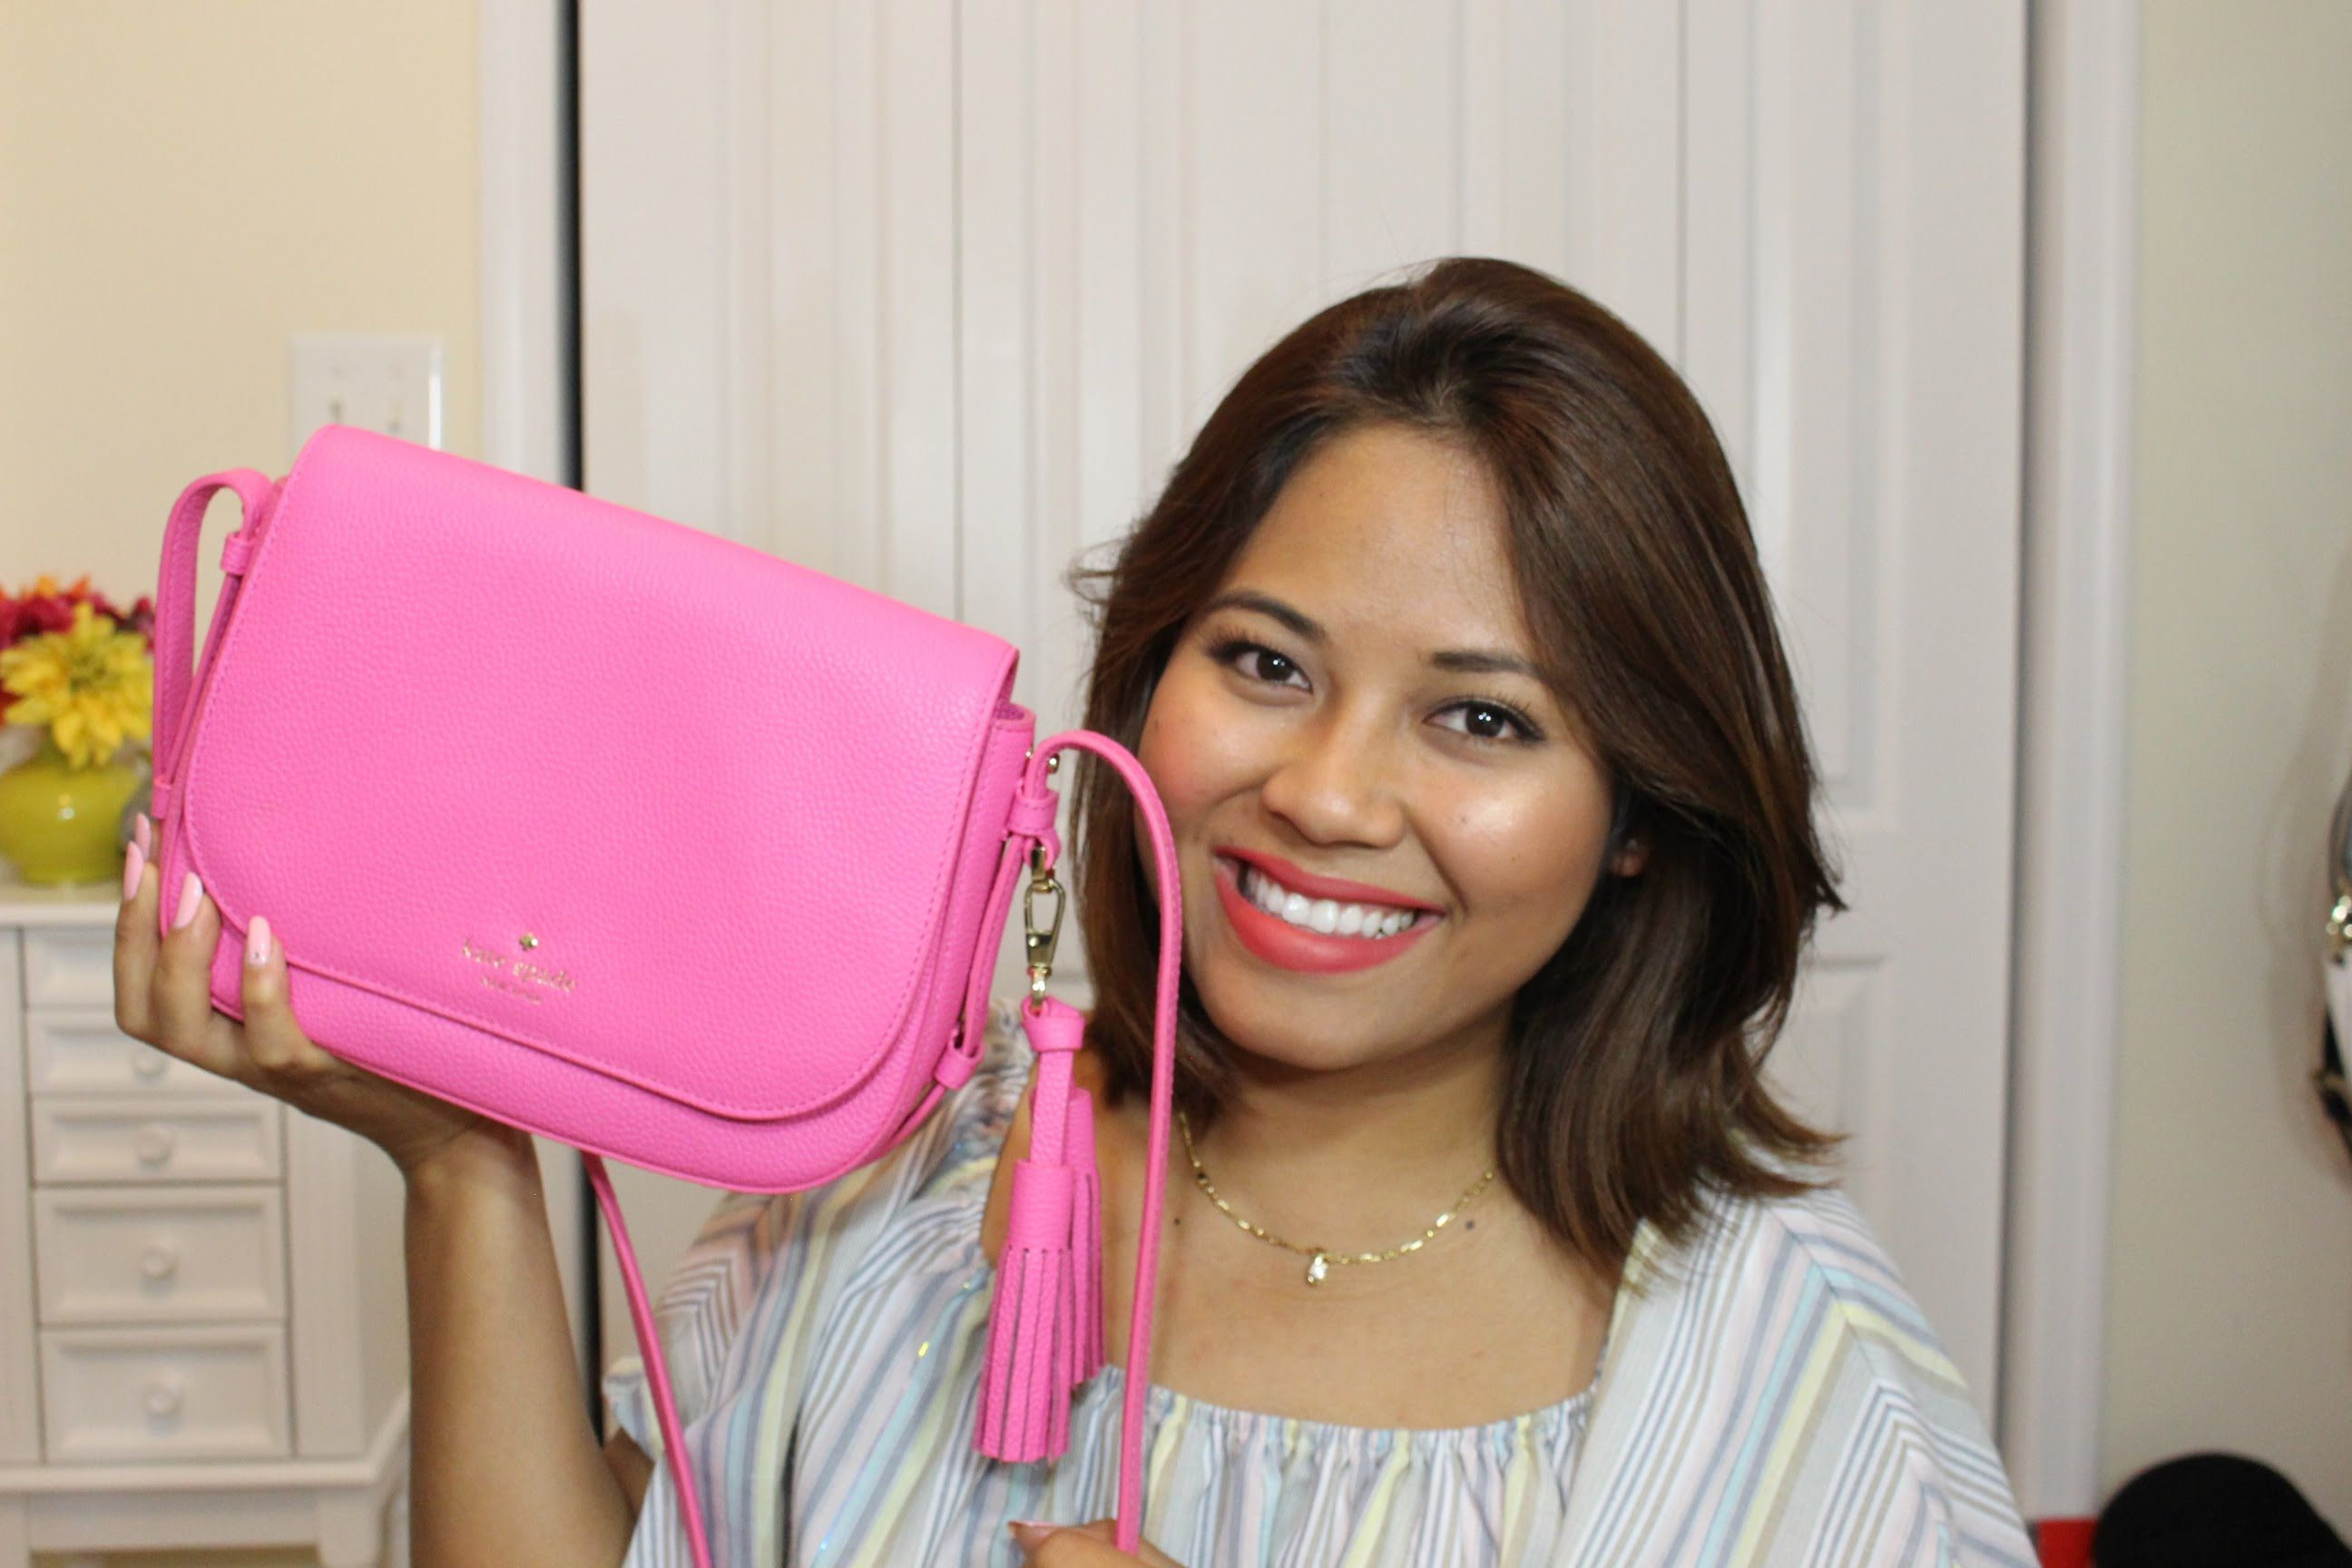 Kate Spade Orchard Street Penelope Bag Review <3